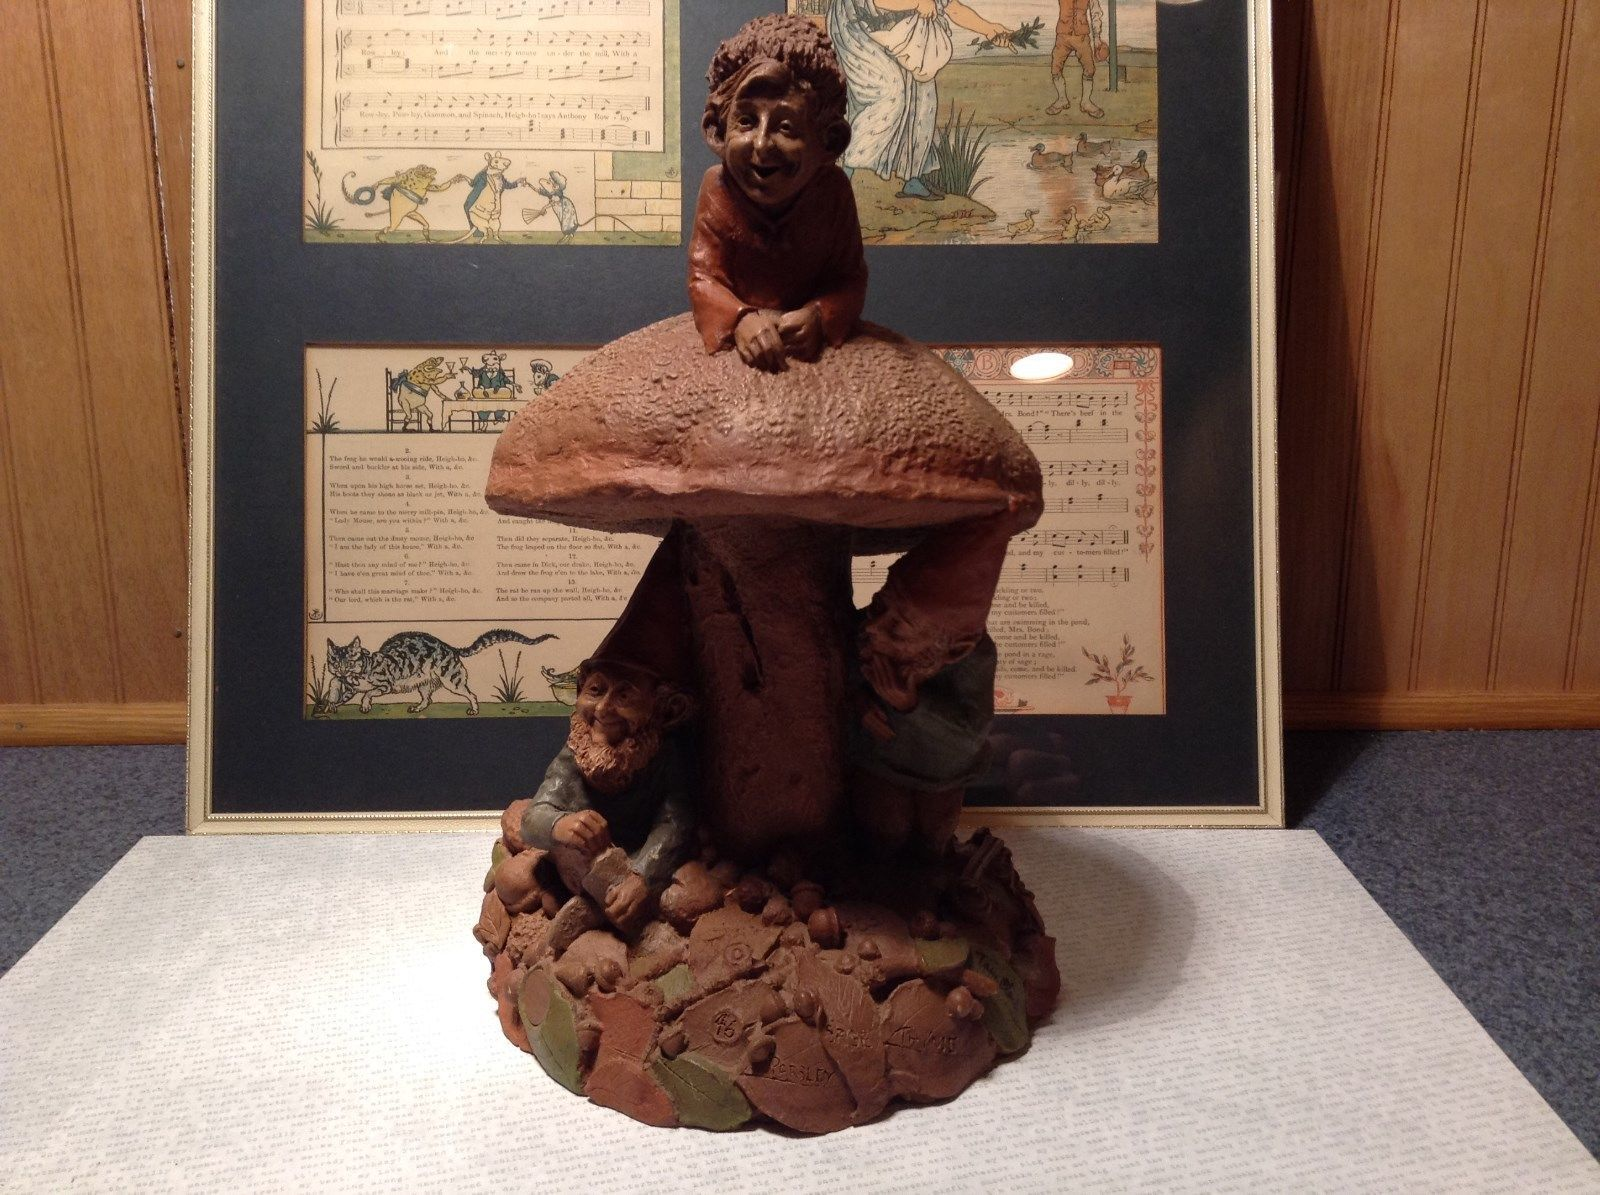 Tom Clark Gnome Statue 3 Gnomes One on Mushroom Two Underneath with Hats